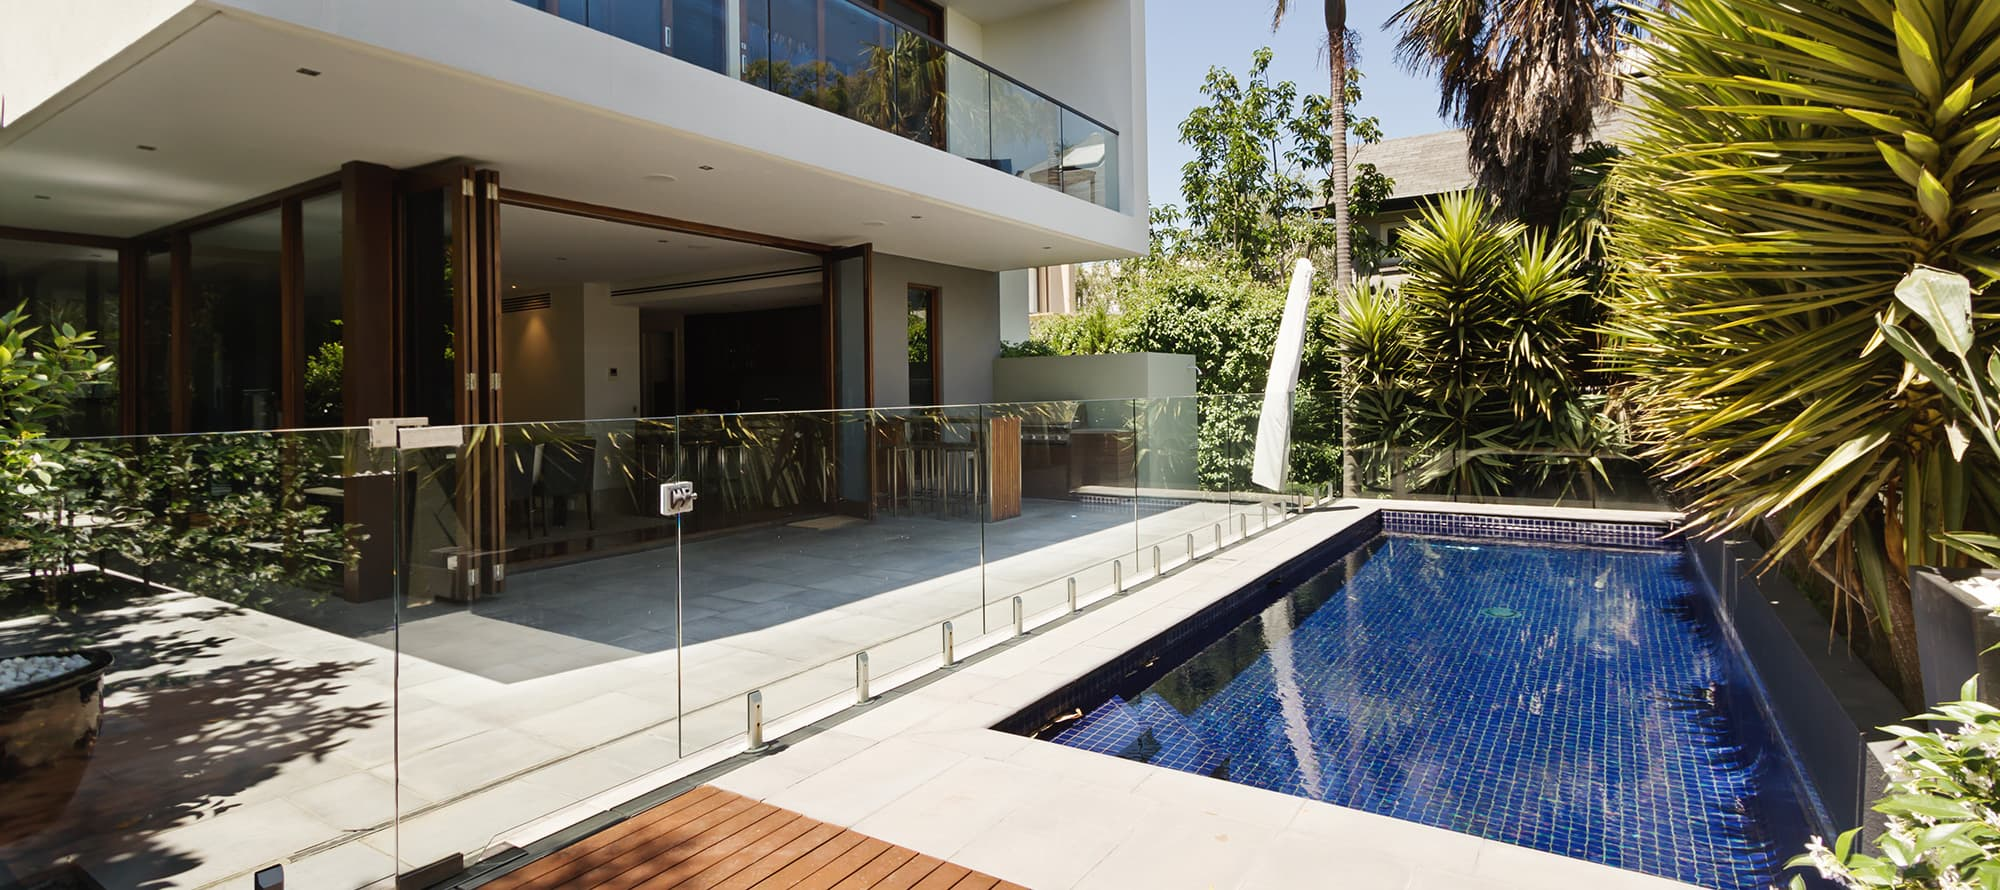 Superior Glass Pool Fencing Gold Coast Pool Fencers